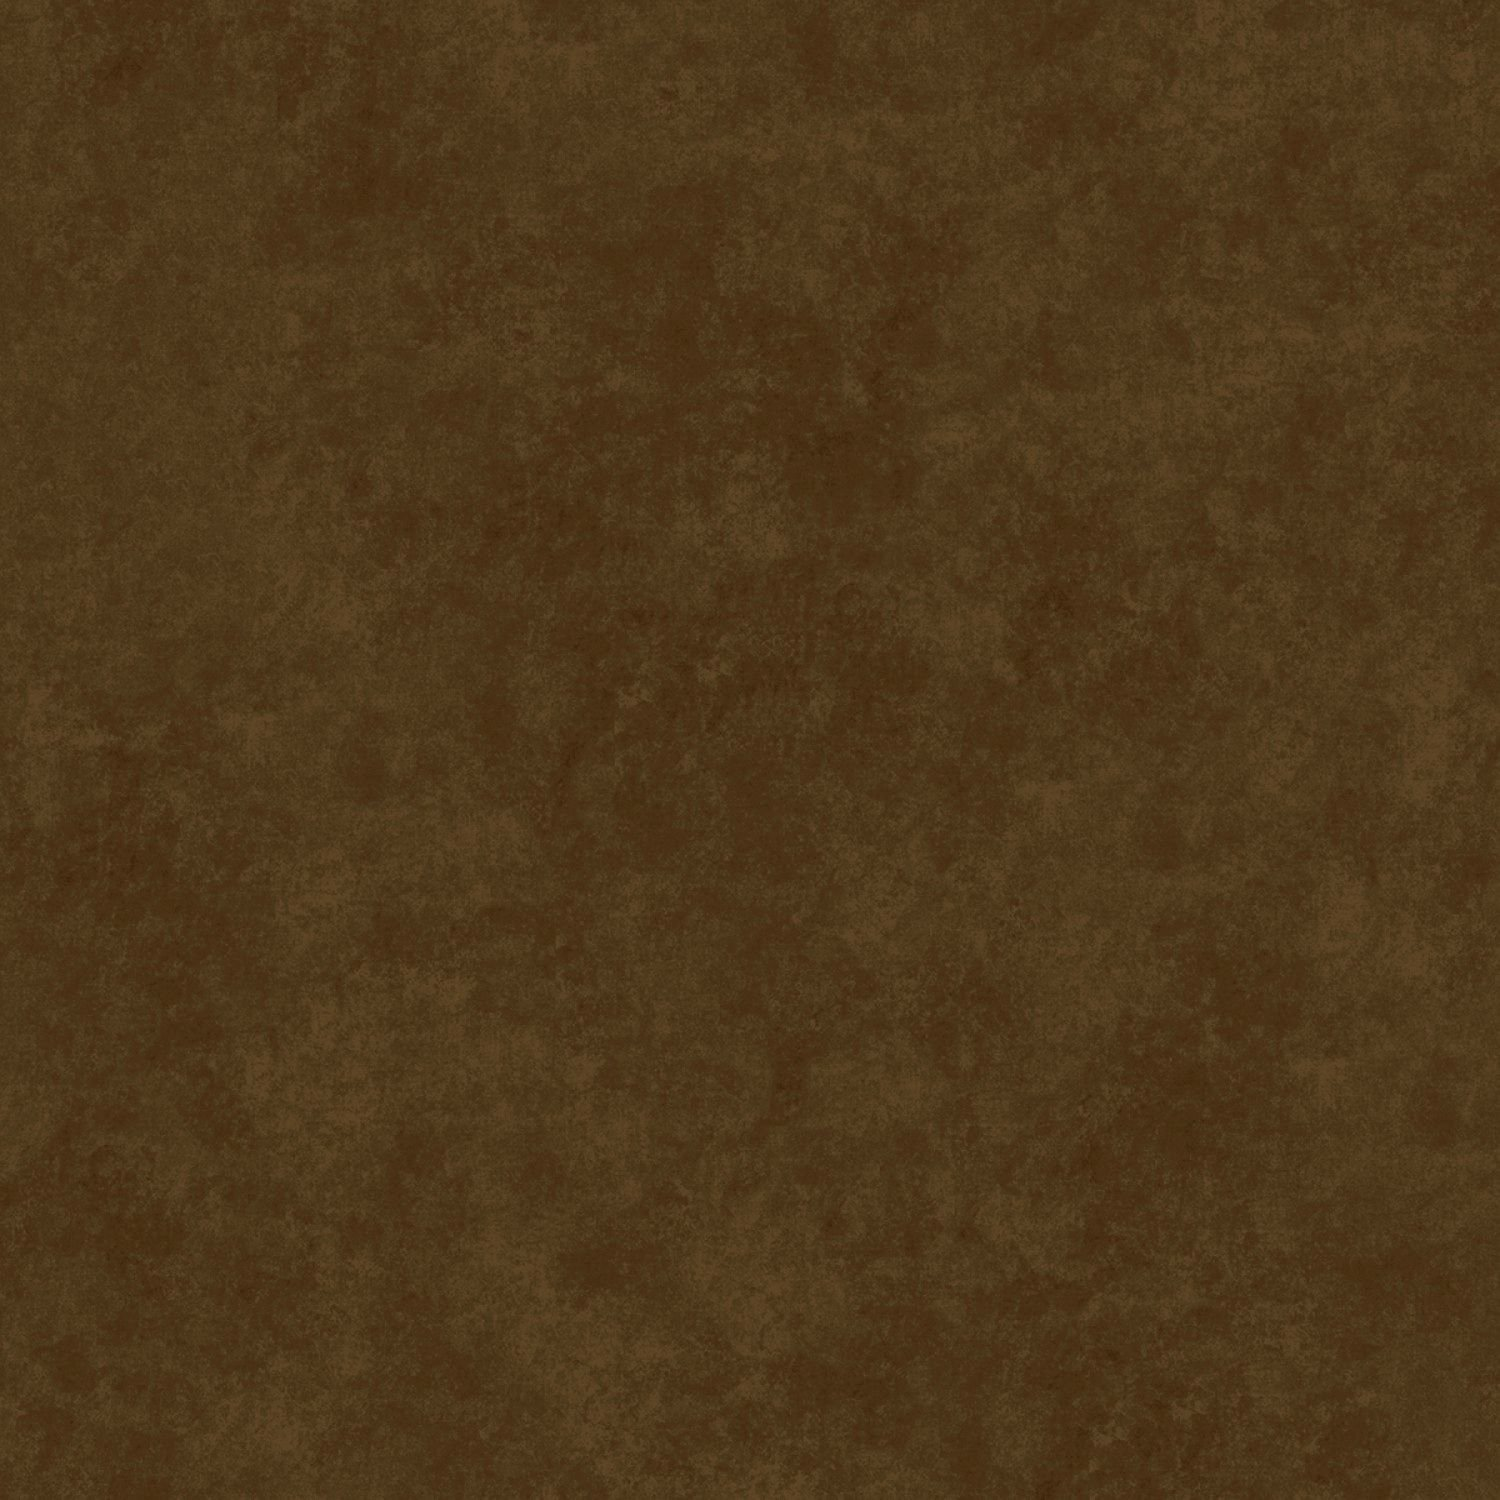 23848 Suede Look Backing 108 Wide Barista